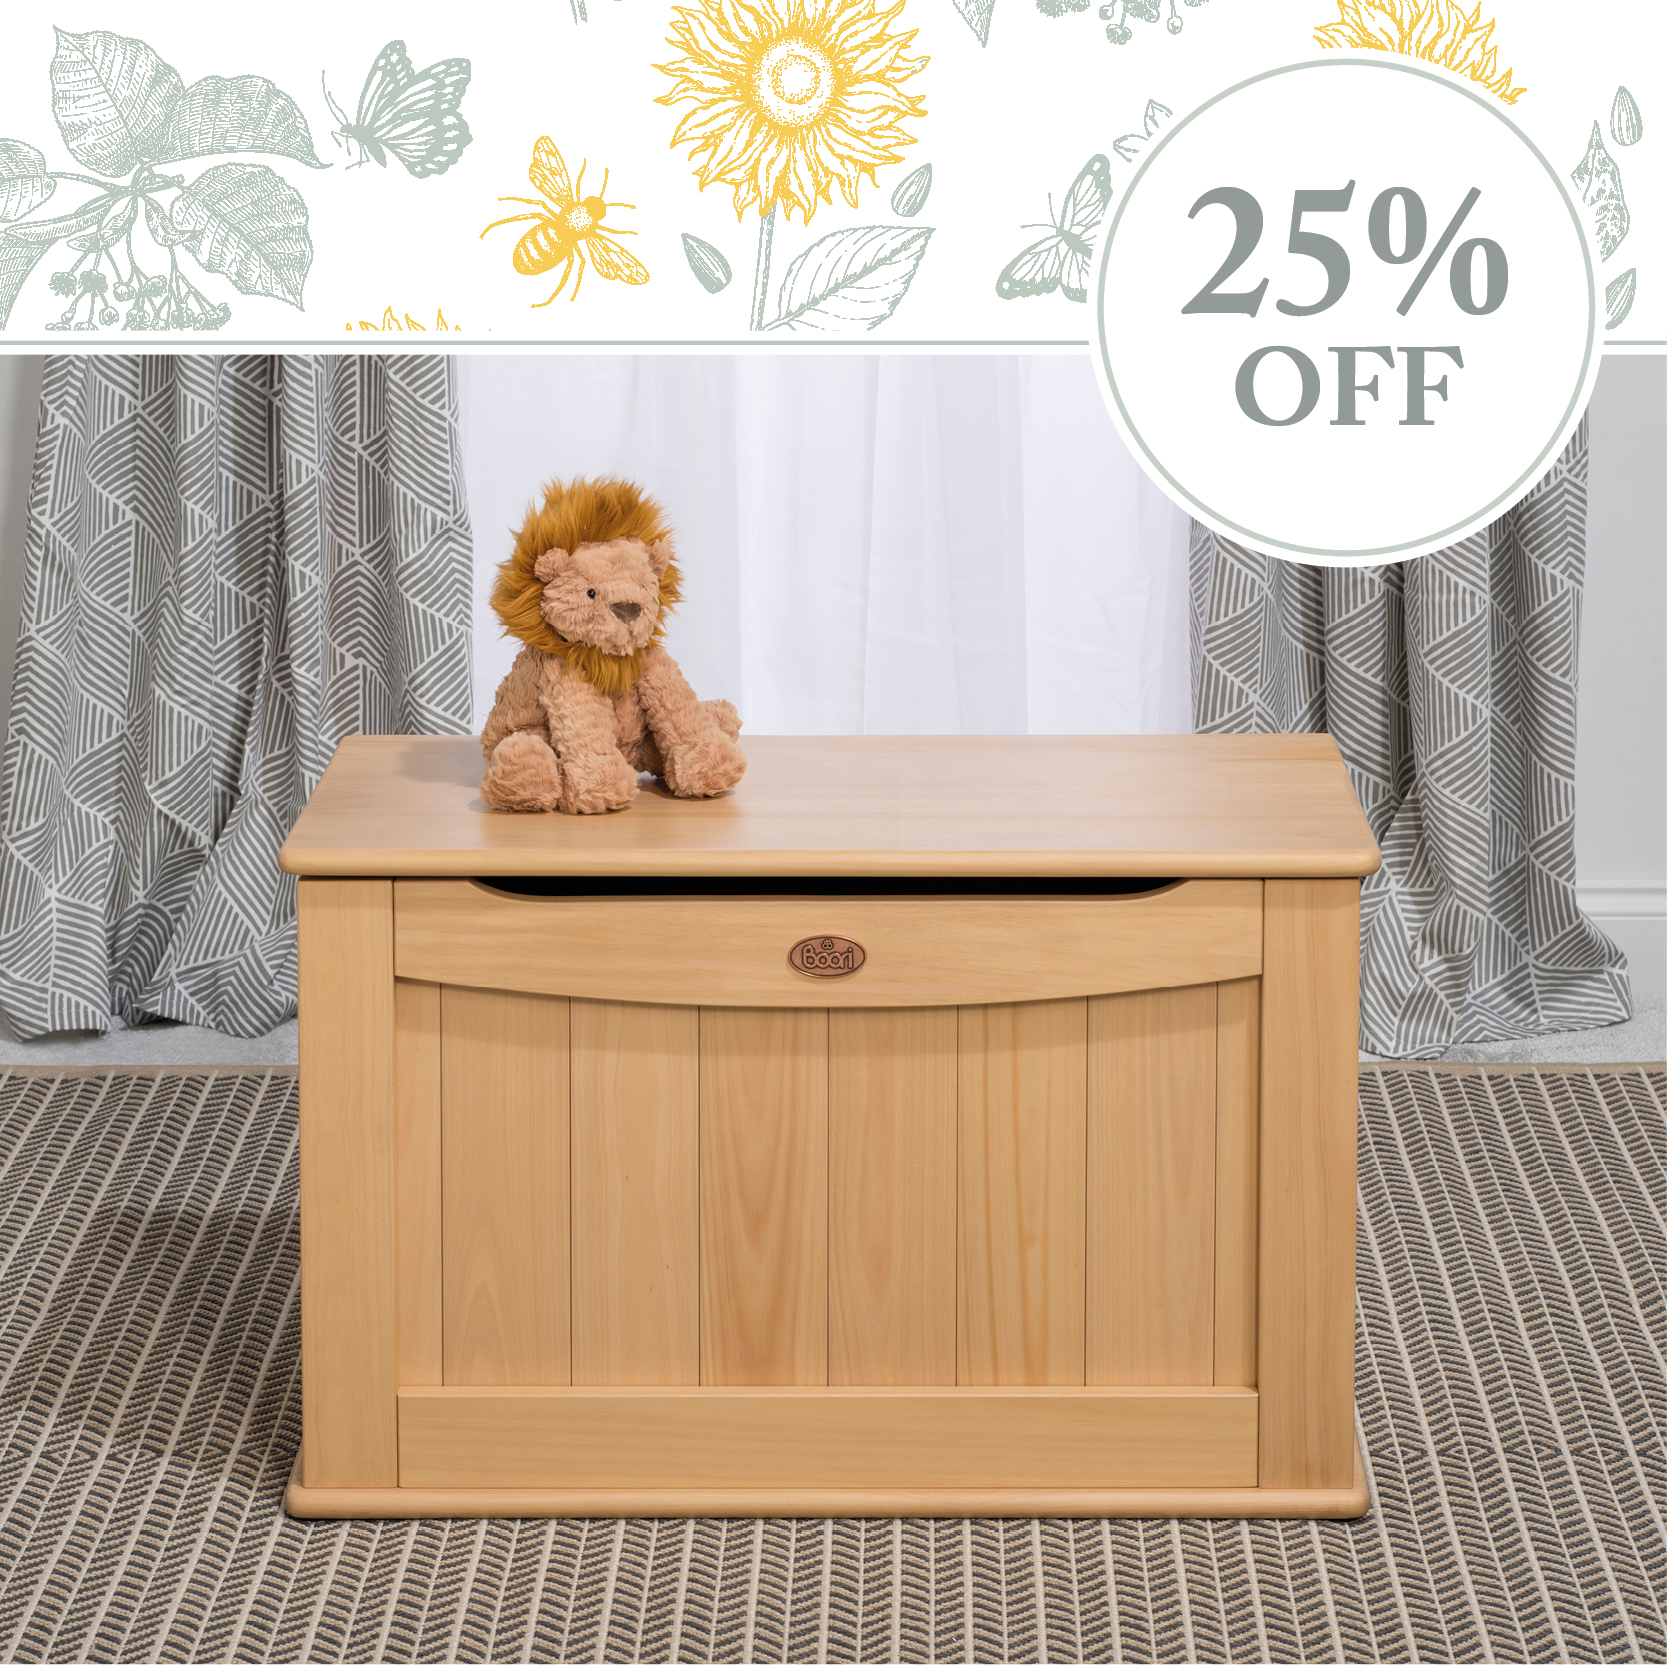 25% off Toy Boxes